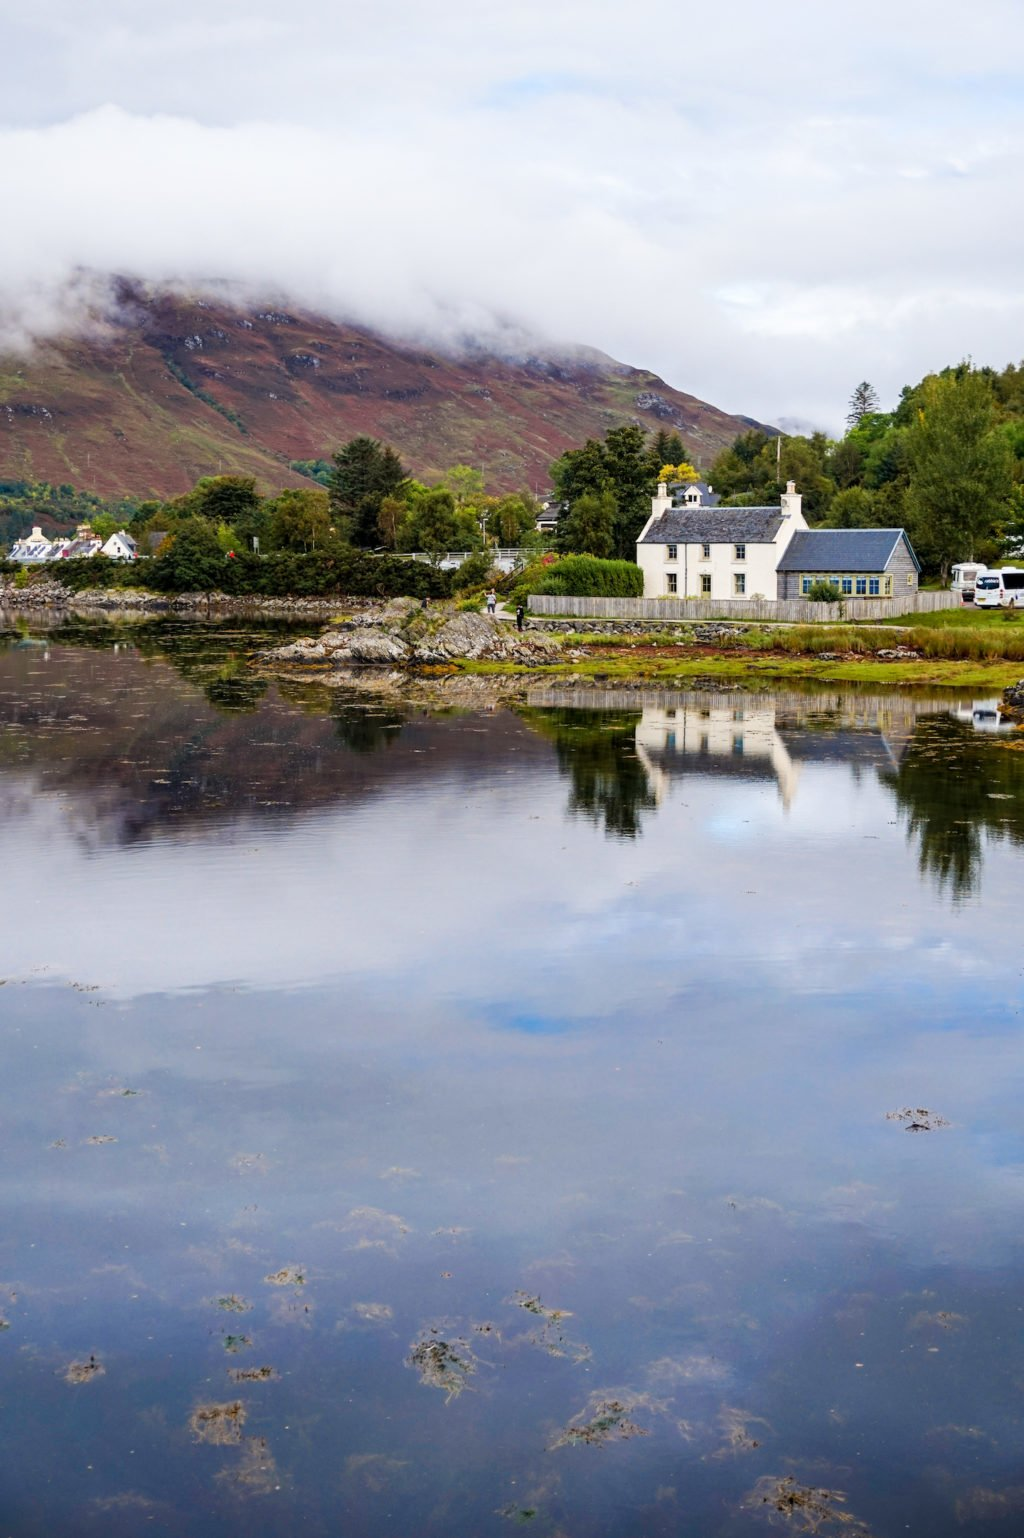 Scotland Villages •3-Day Tour to Skye, The Highlands, and Loch Ness | The Wanderful Me